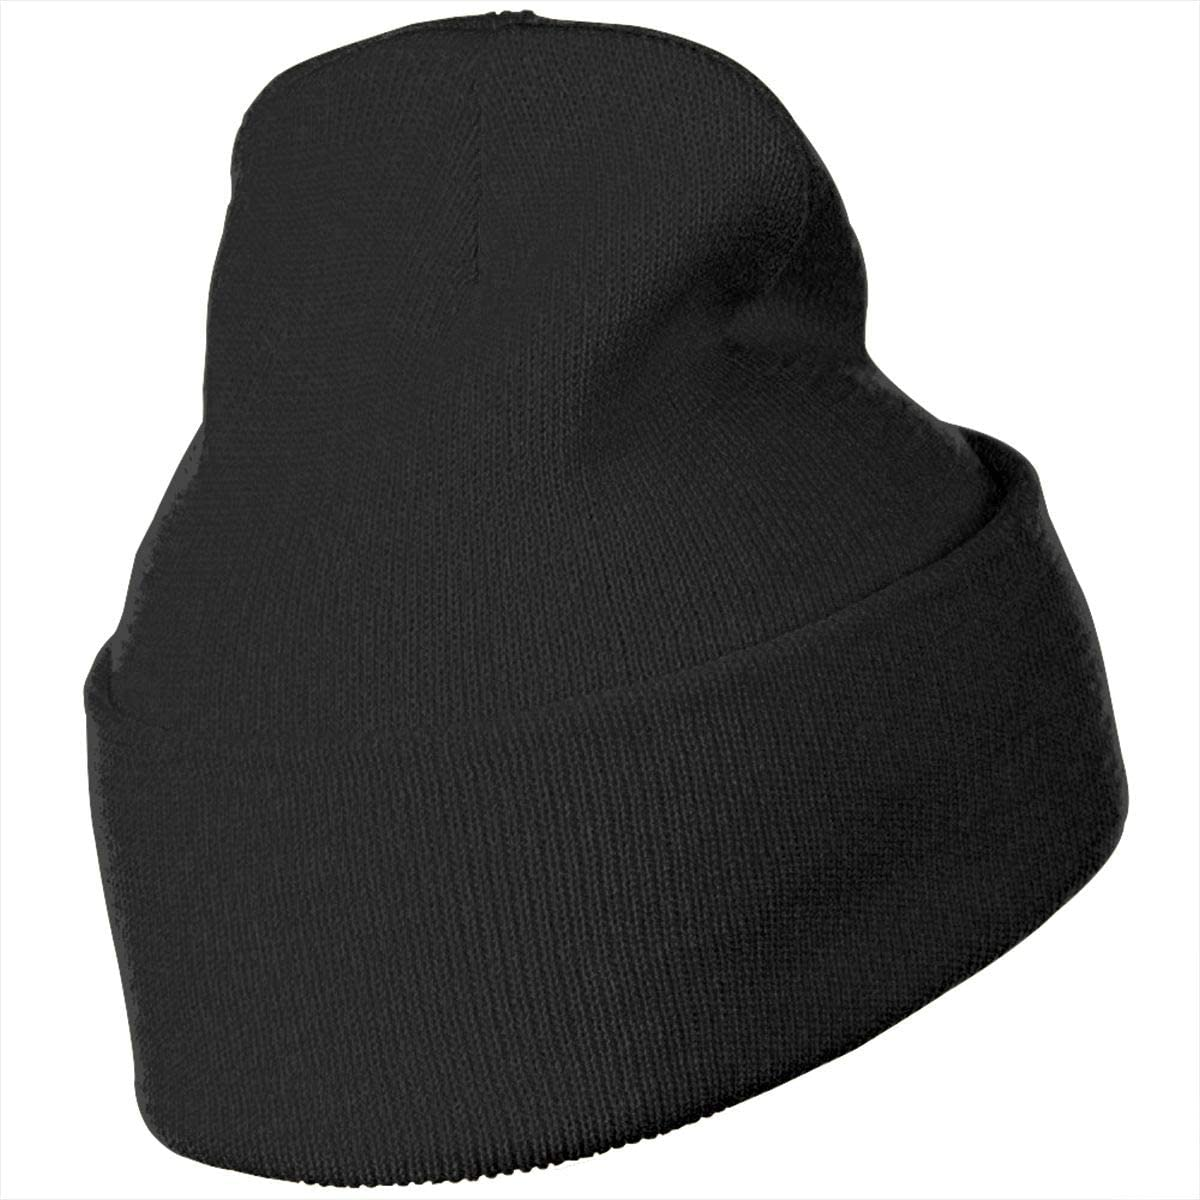 Ydbve81-G Mens and Womens 100/% Acrylic Knitted Hat Cap Puppies by The Fire Fashion Beanie Hat